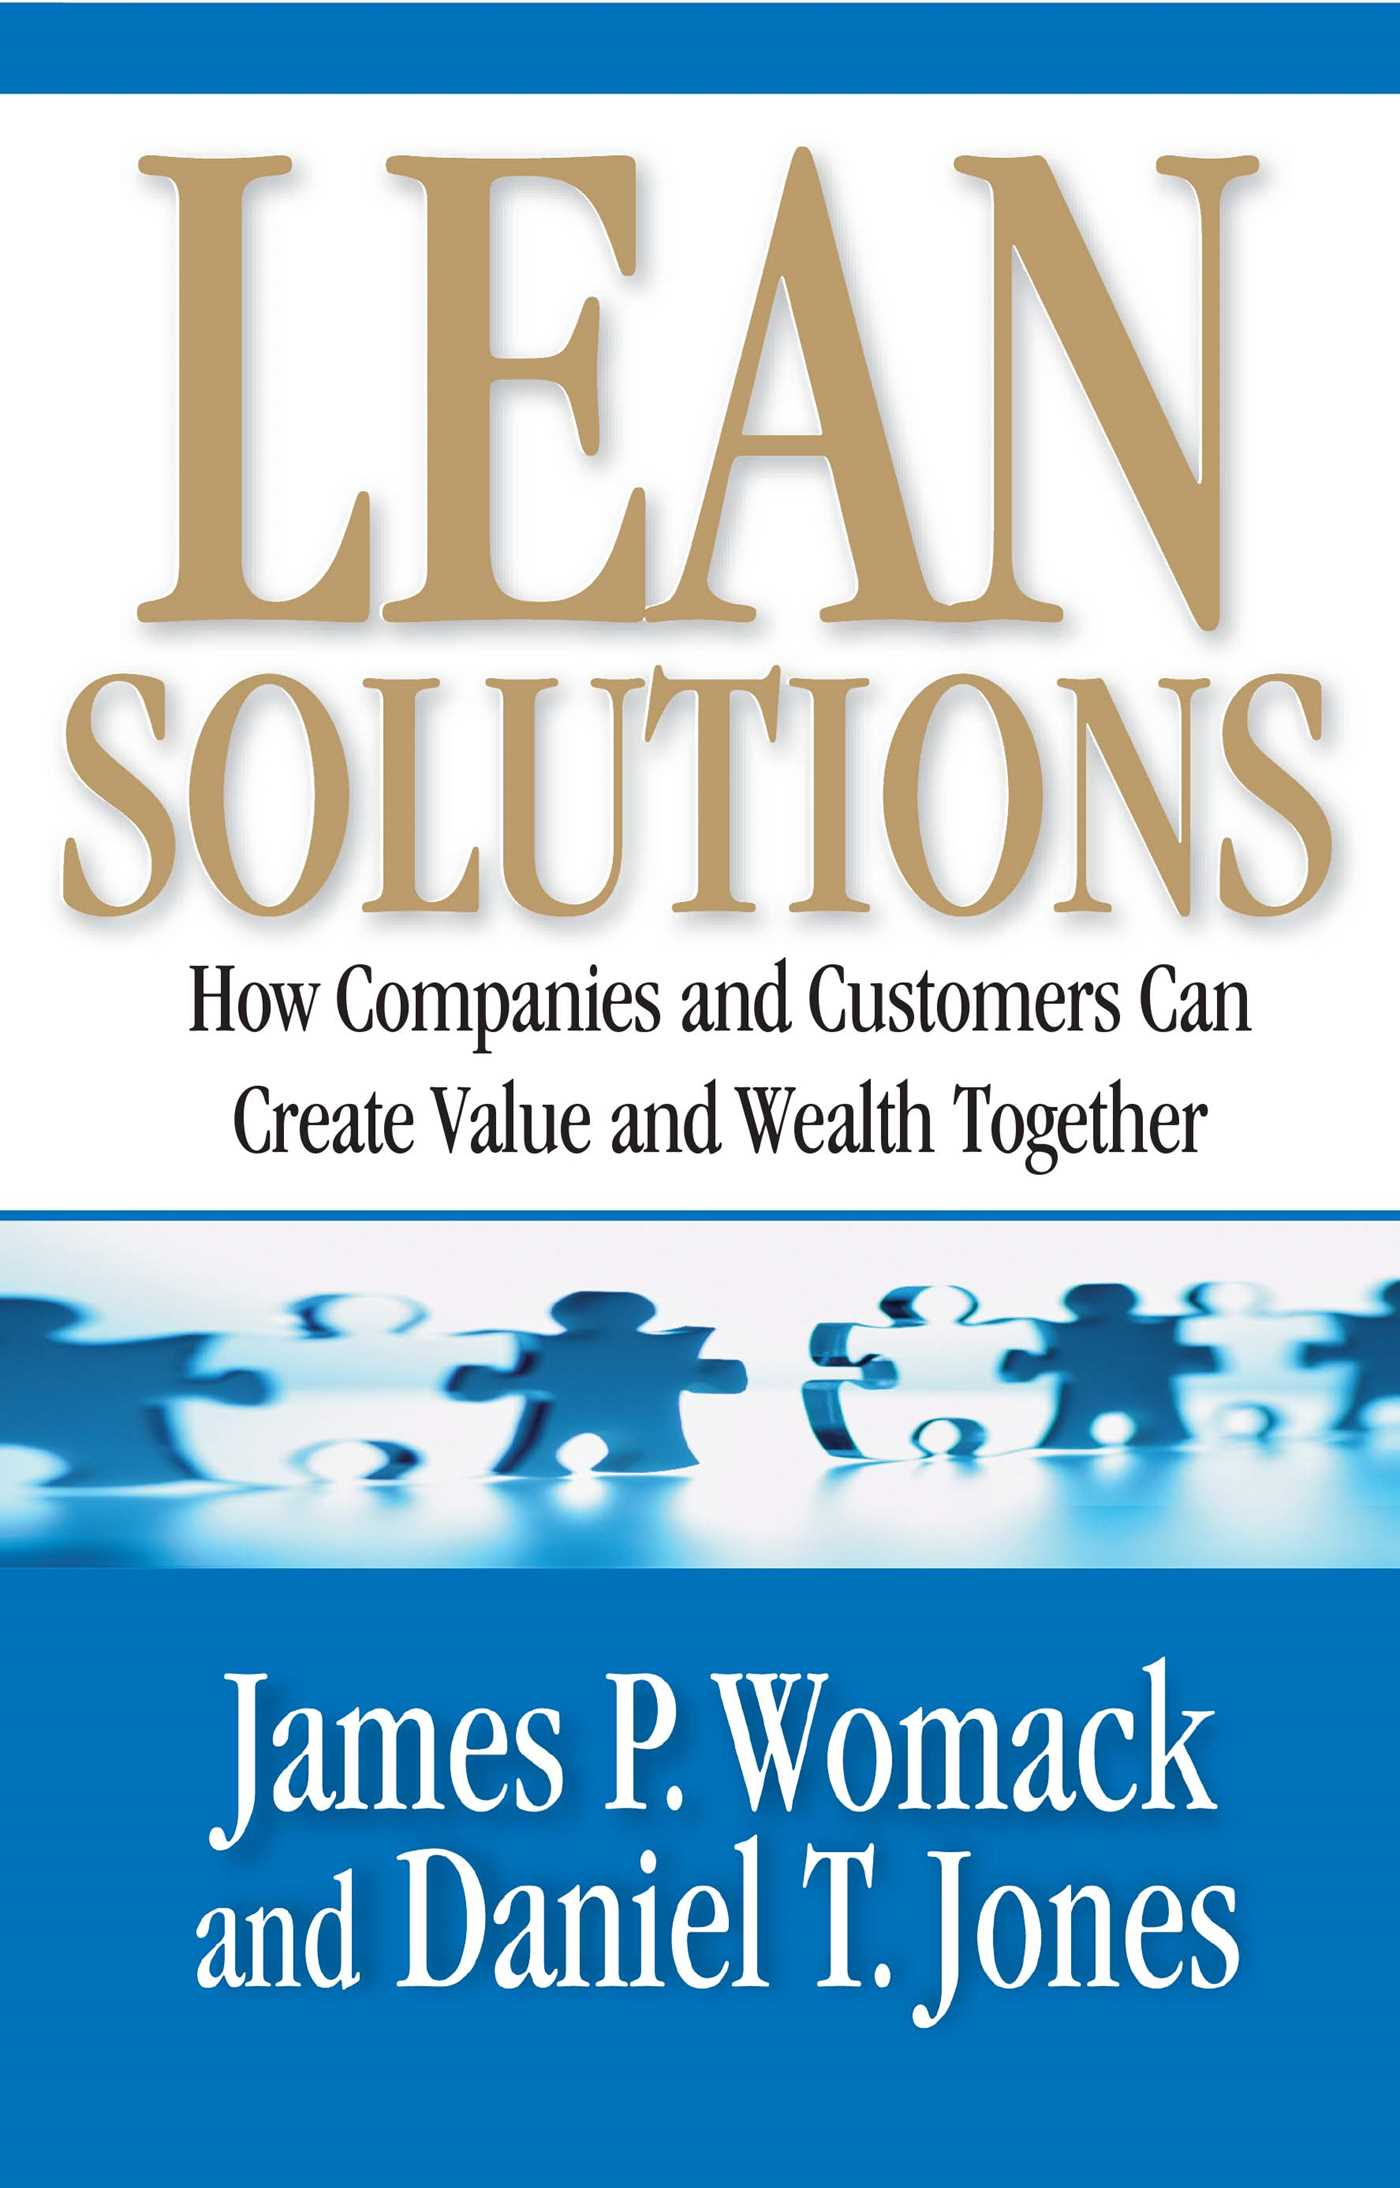 Lean thinking book by james p womack daniel t jones official lean thinking book by james p womack daniel t jones official publisher page simon schuster fandeluxe Images